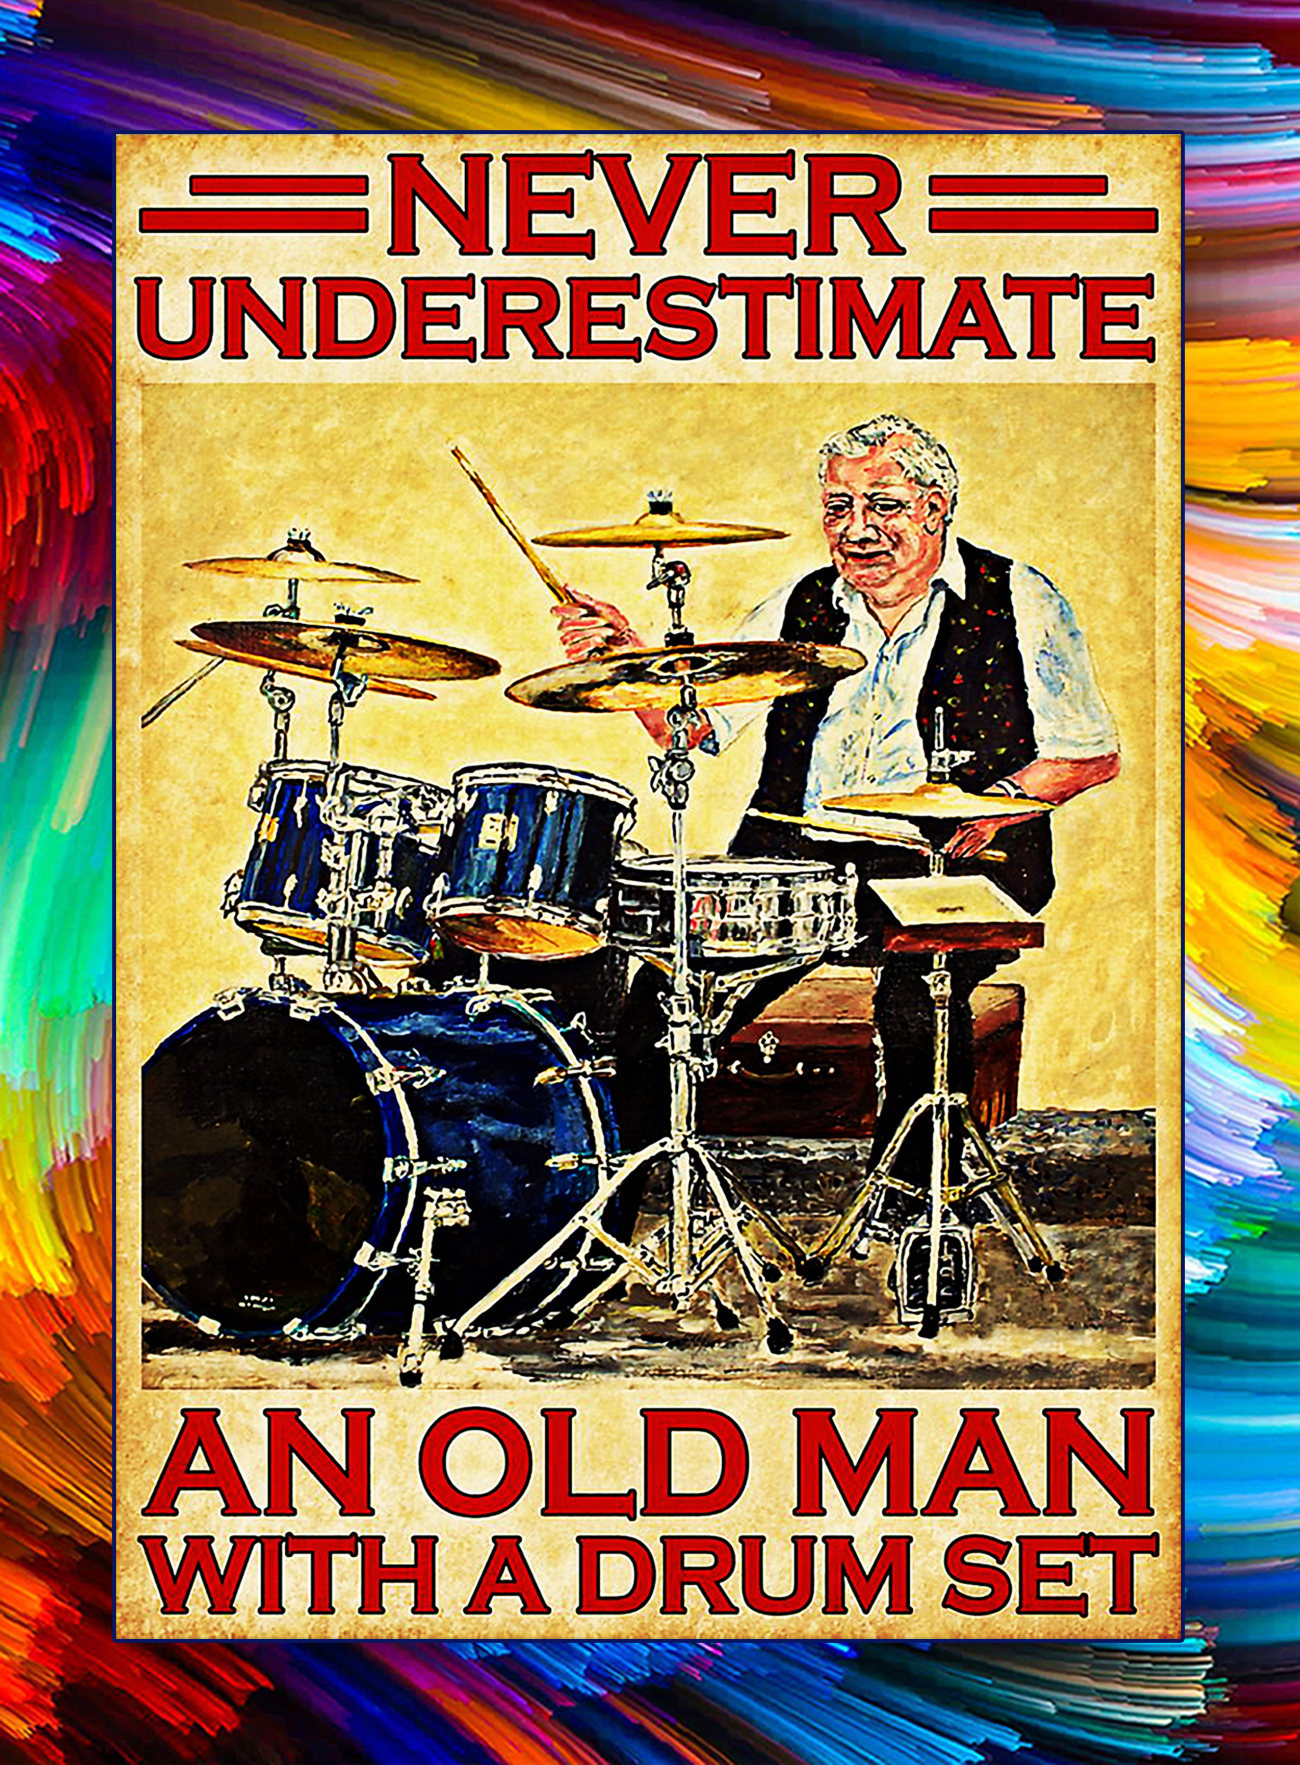 Never underestimate an old man with a drum set poster - A1